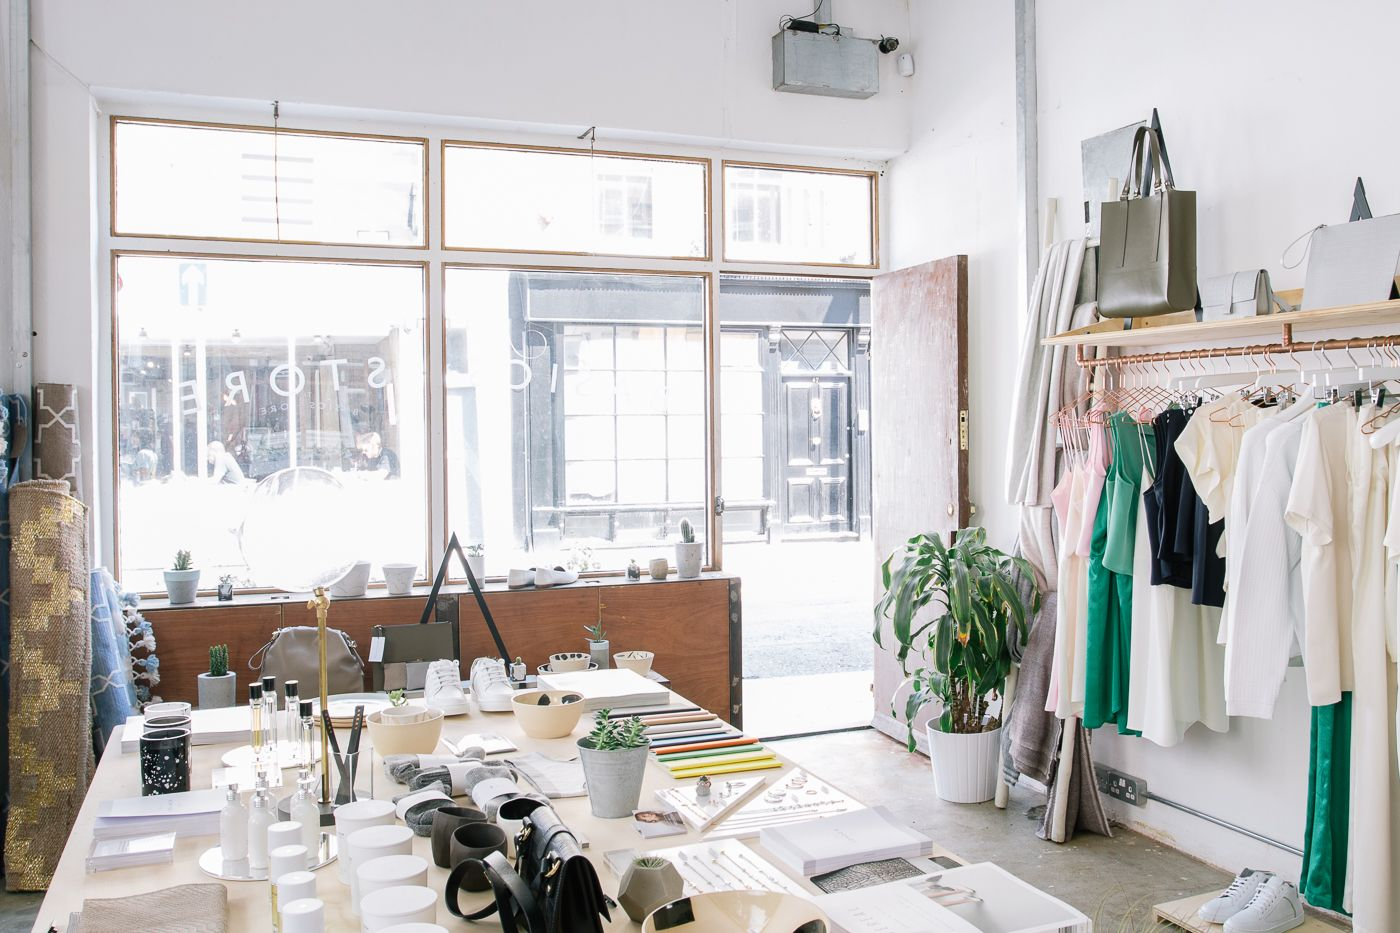 **How to style your shop** Marina Guergova, founder of Marina London has given us great tips on how to style your pop-up shop. Learn how to make your displays tactile, how to highlight products with different materials, how to keep your windows clear and how to have something for everyone. #howtos #tips #styleshop #popup